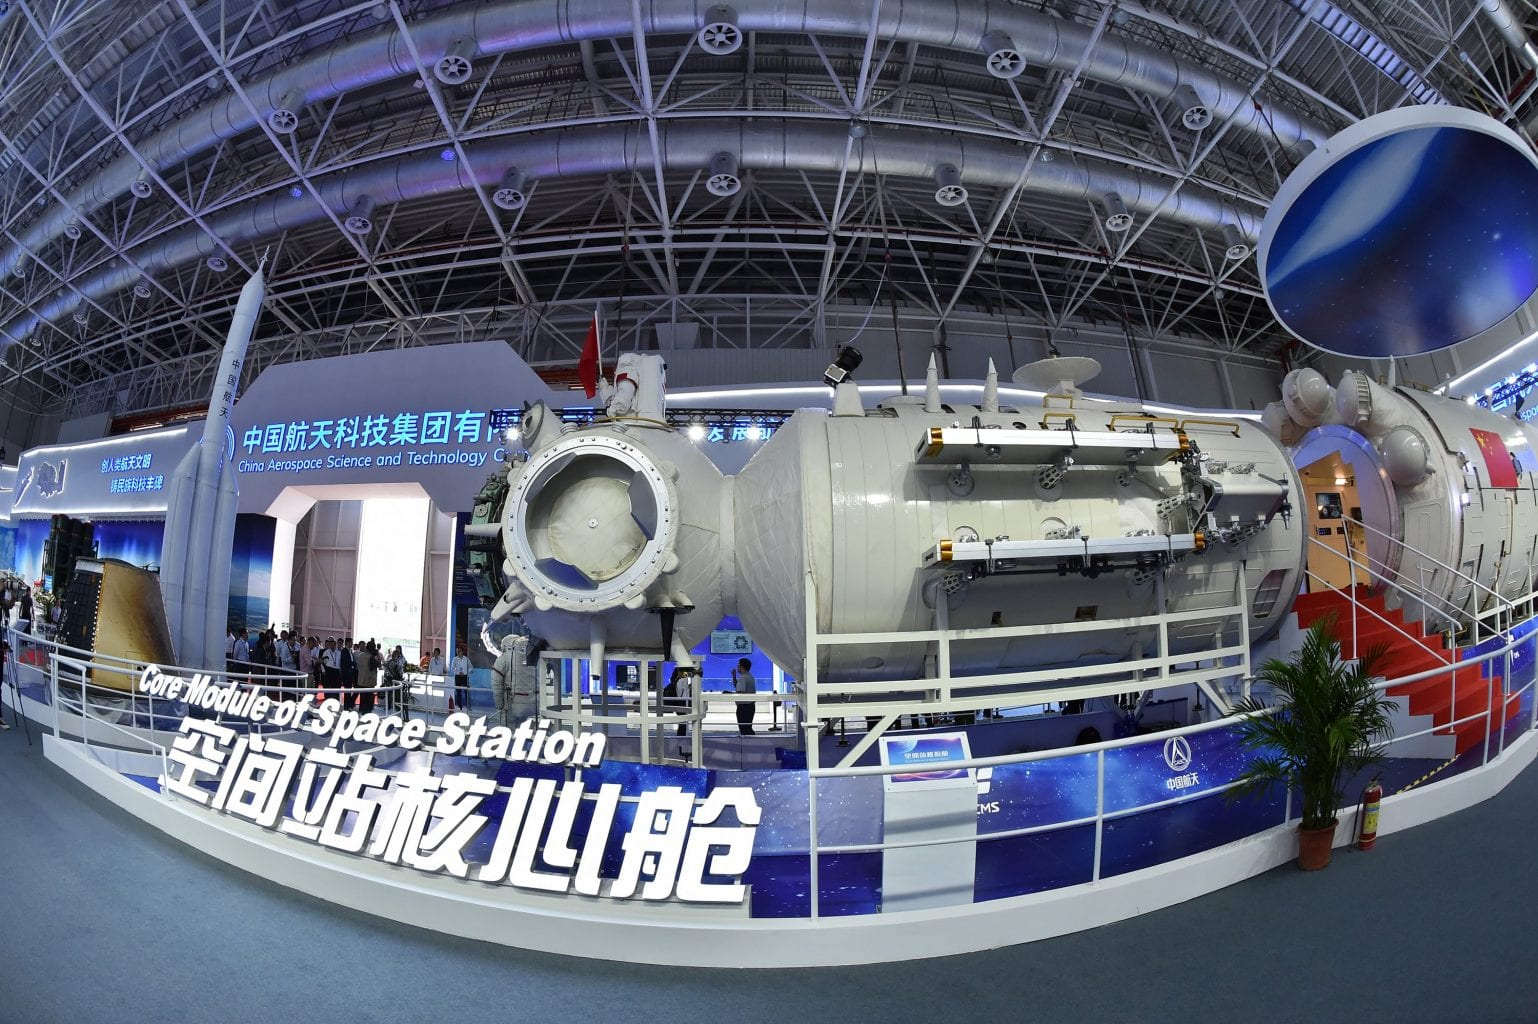 Real-scale model of the core module of the Chinese space station. Credit: Xinhua/Liang Xu